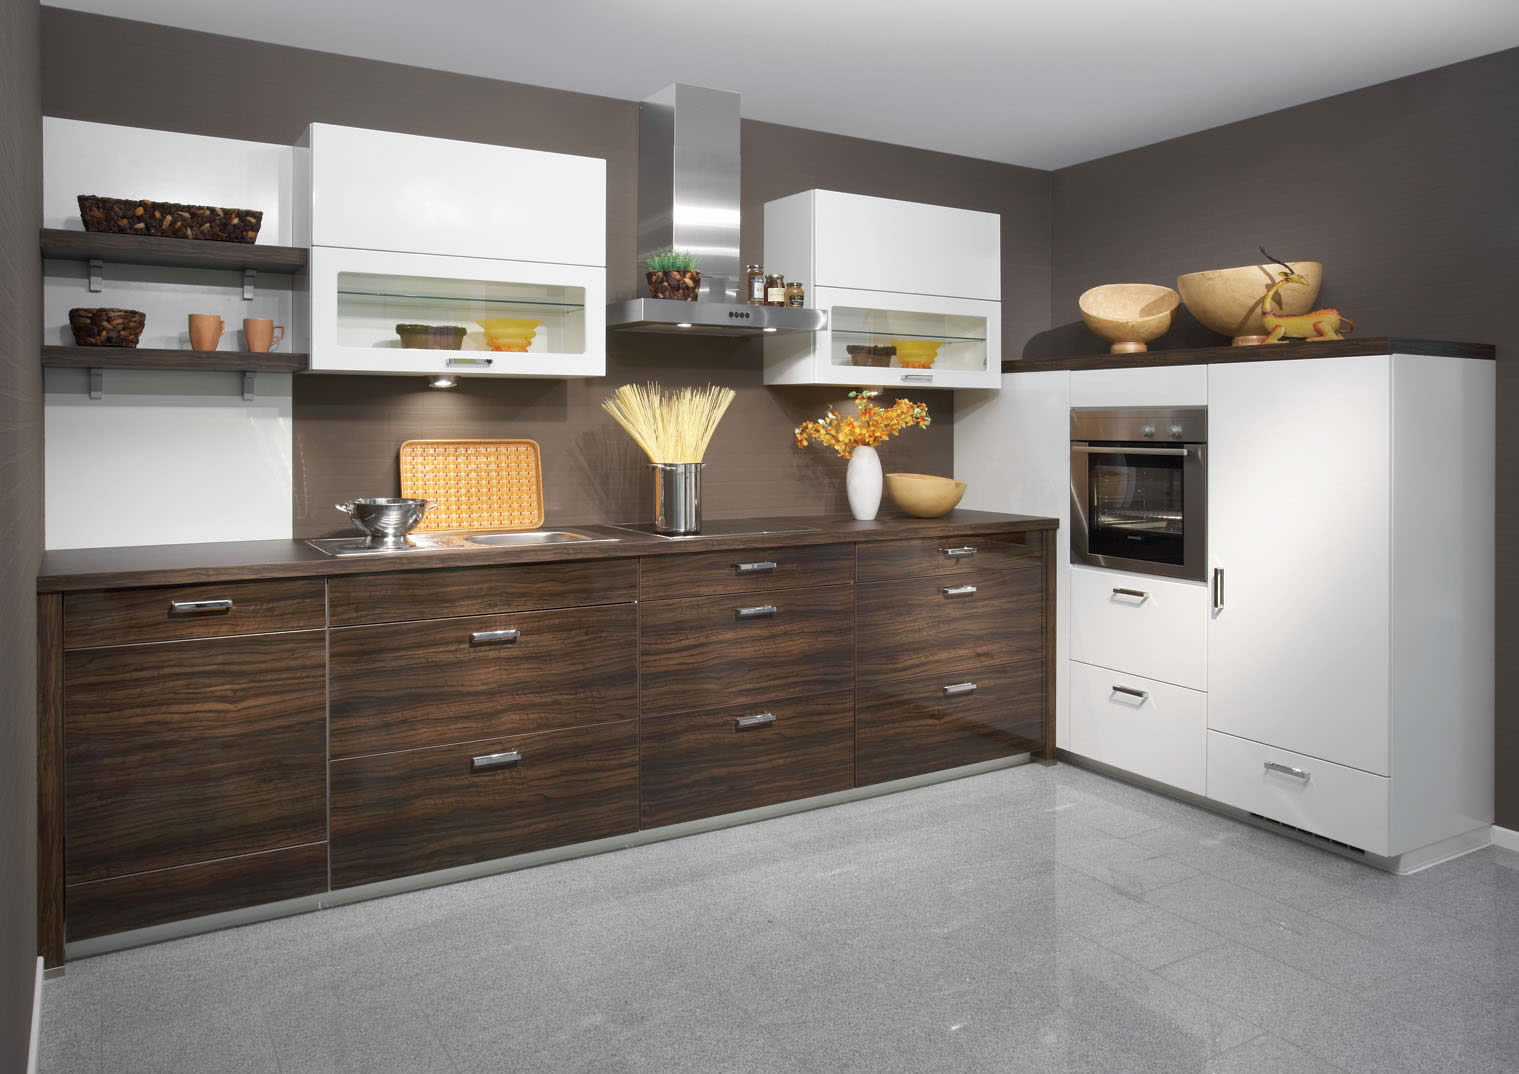 Kitchen design layout ikea